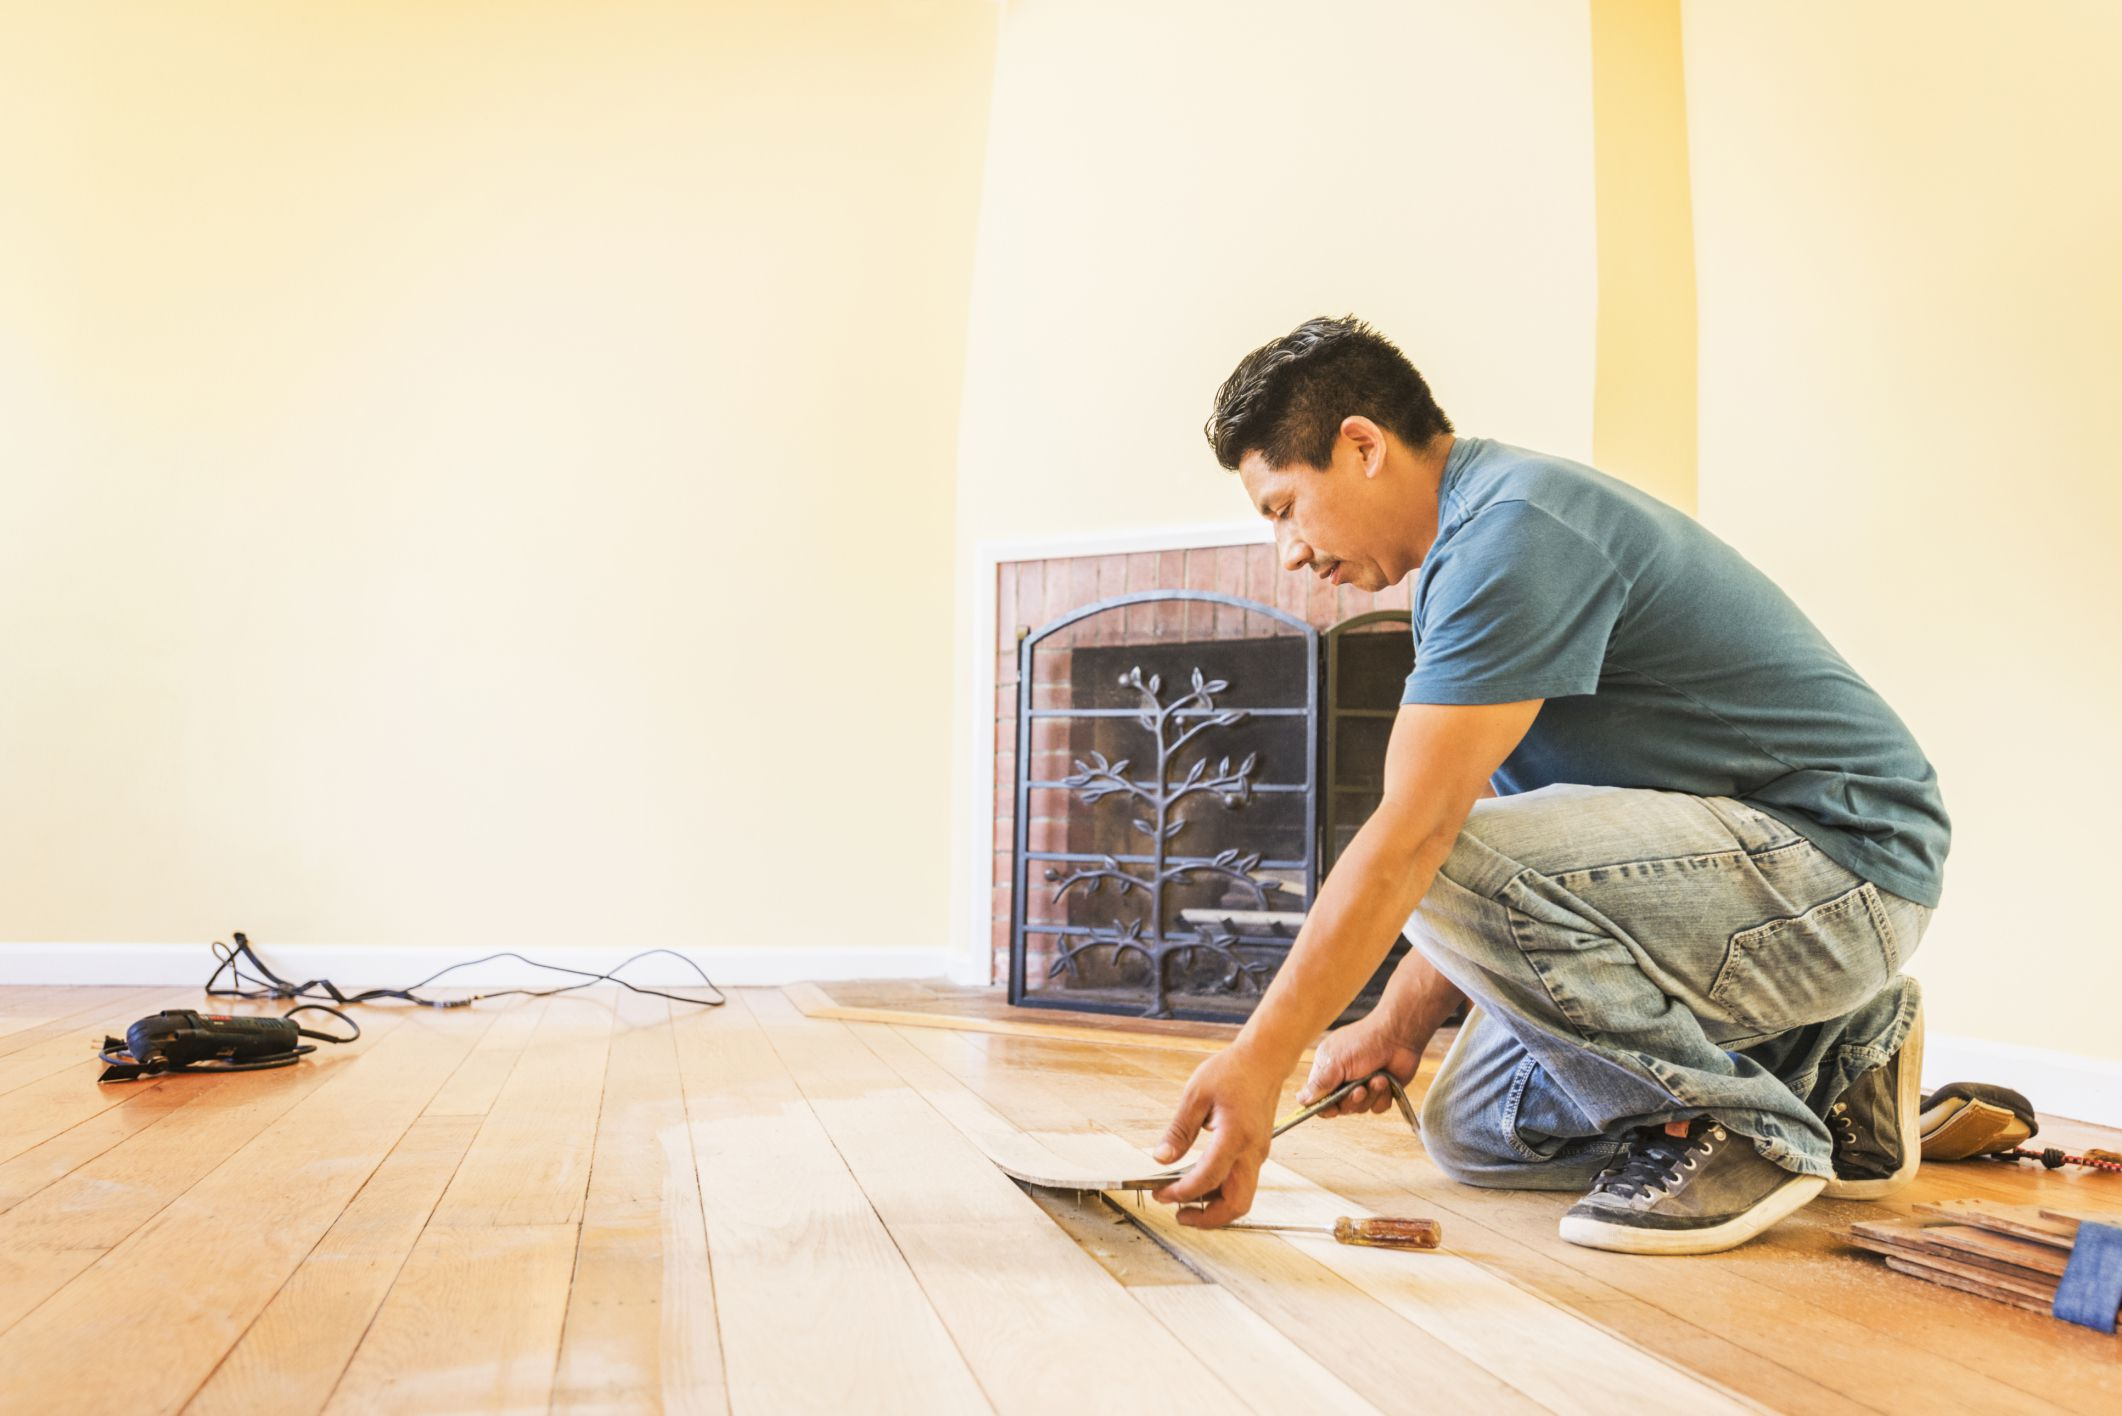 laminate or engineered wood flooring for kitchen accessories store solid hardwood costs - professional vs. diy